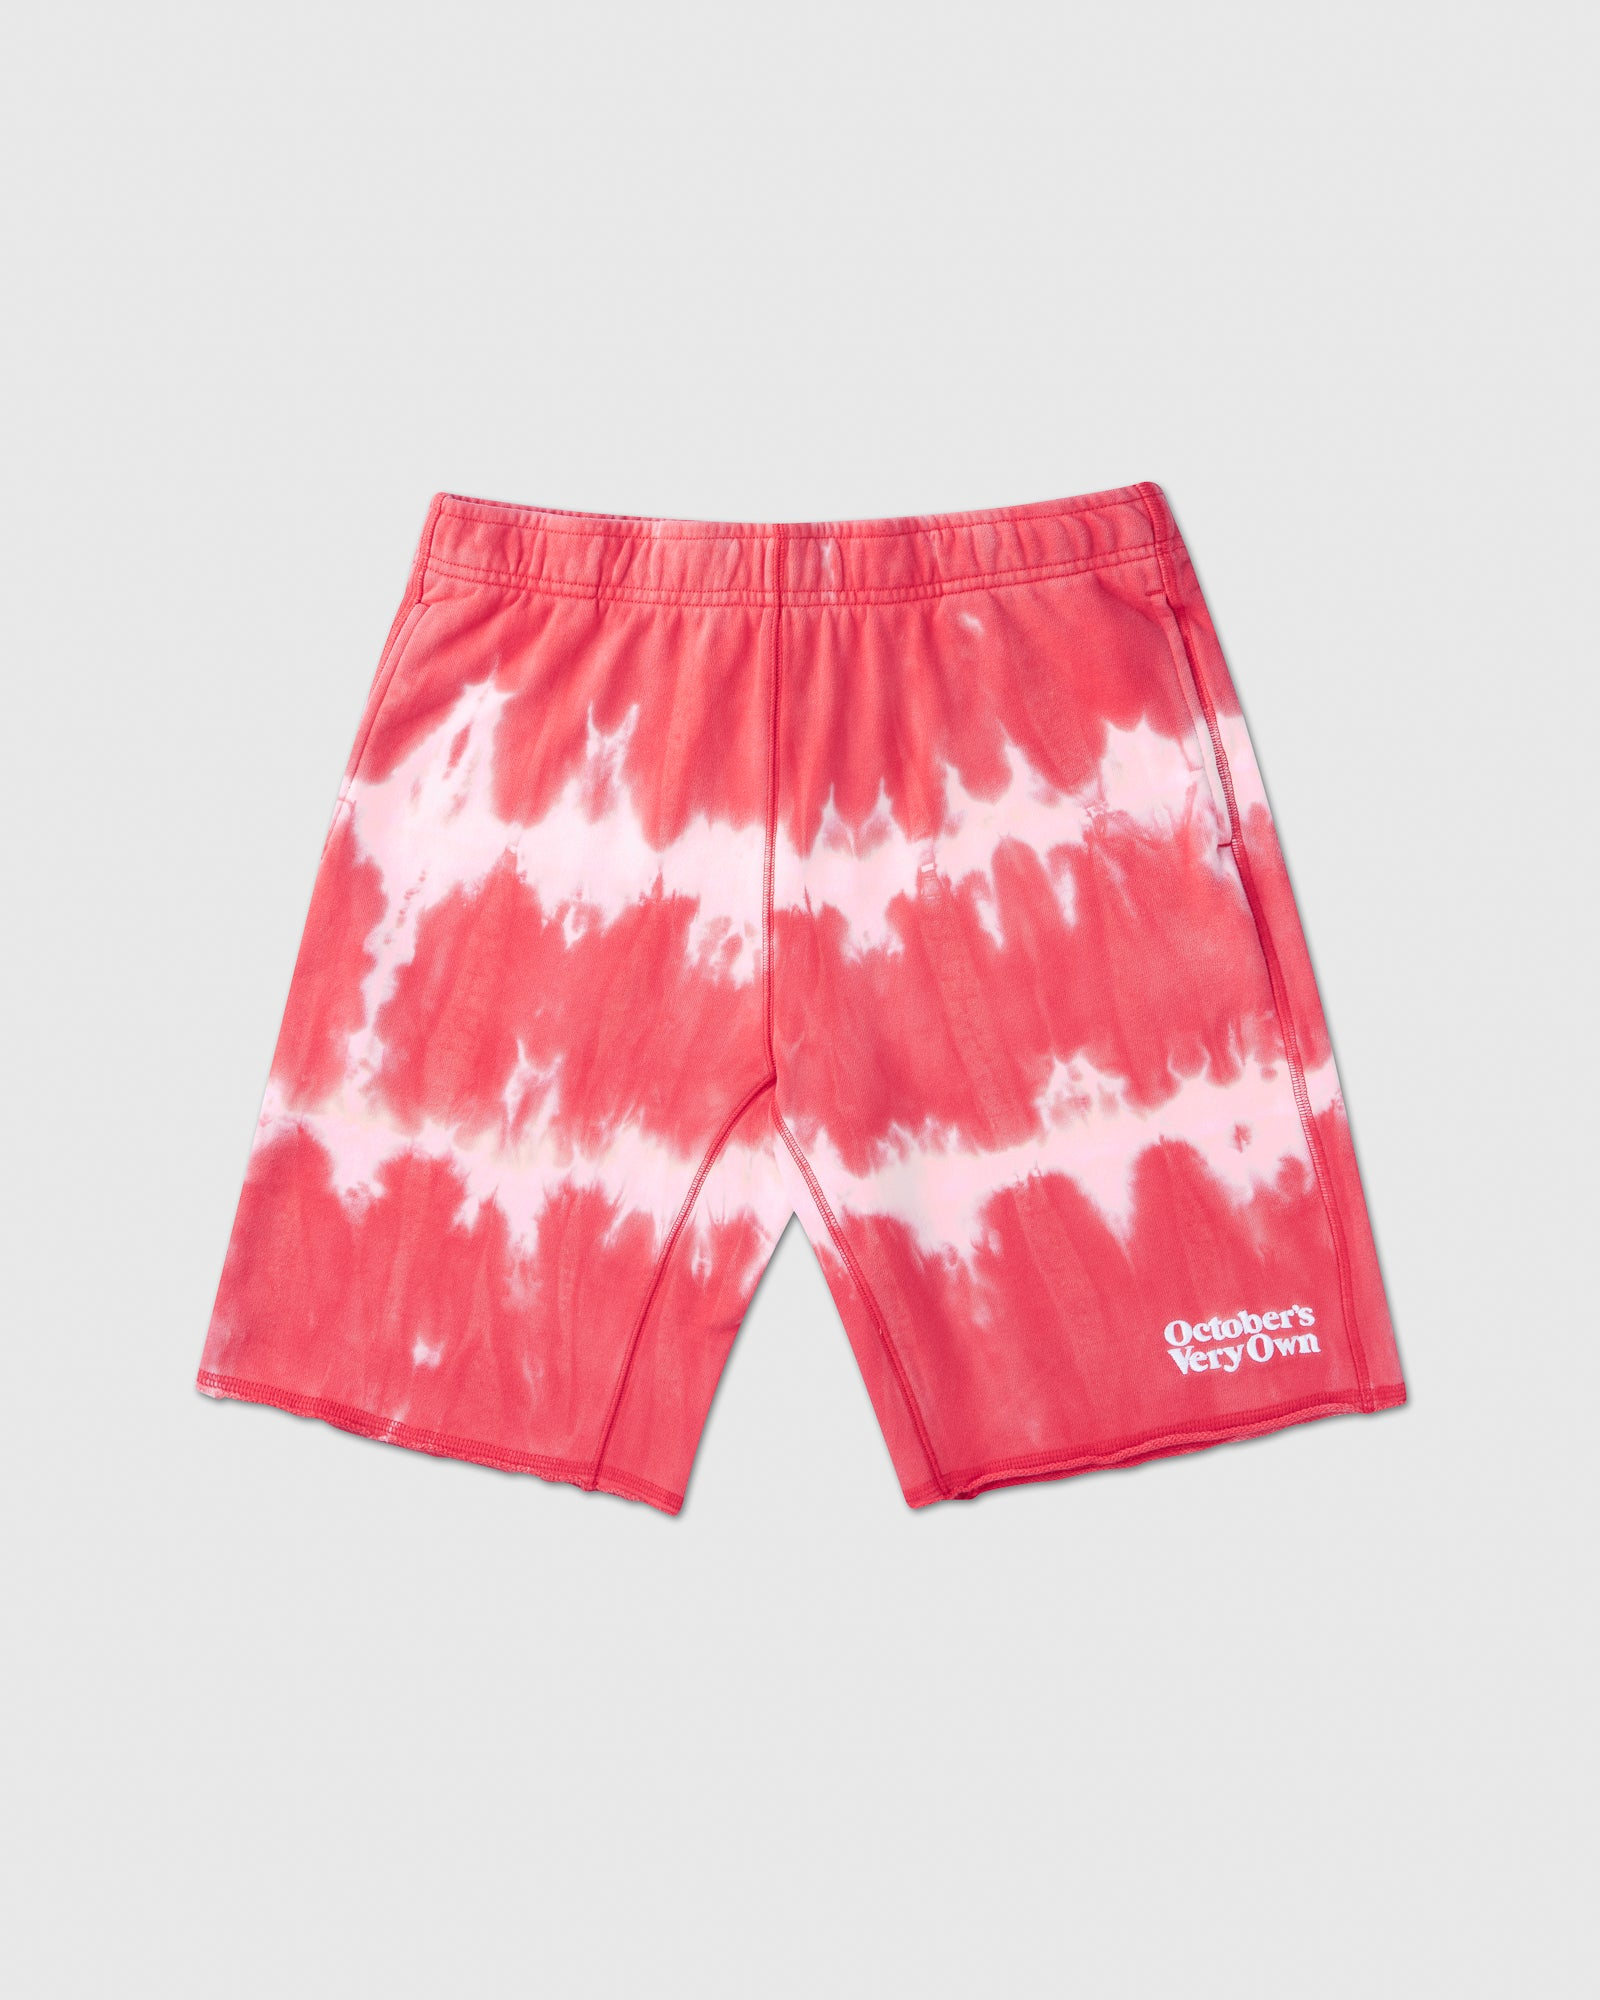 OVO MARBLE TIE DYE SWEAT SHORT - RED/PINK IMAGE #1